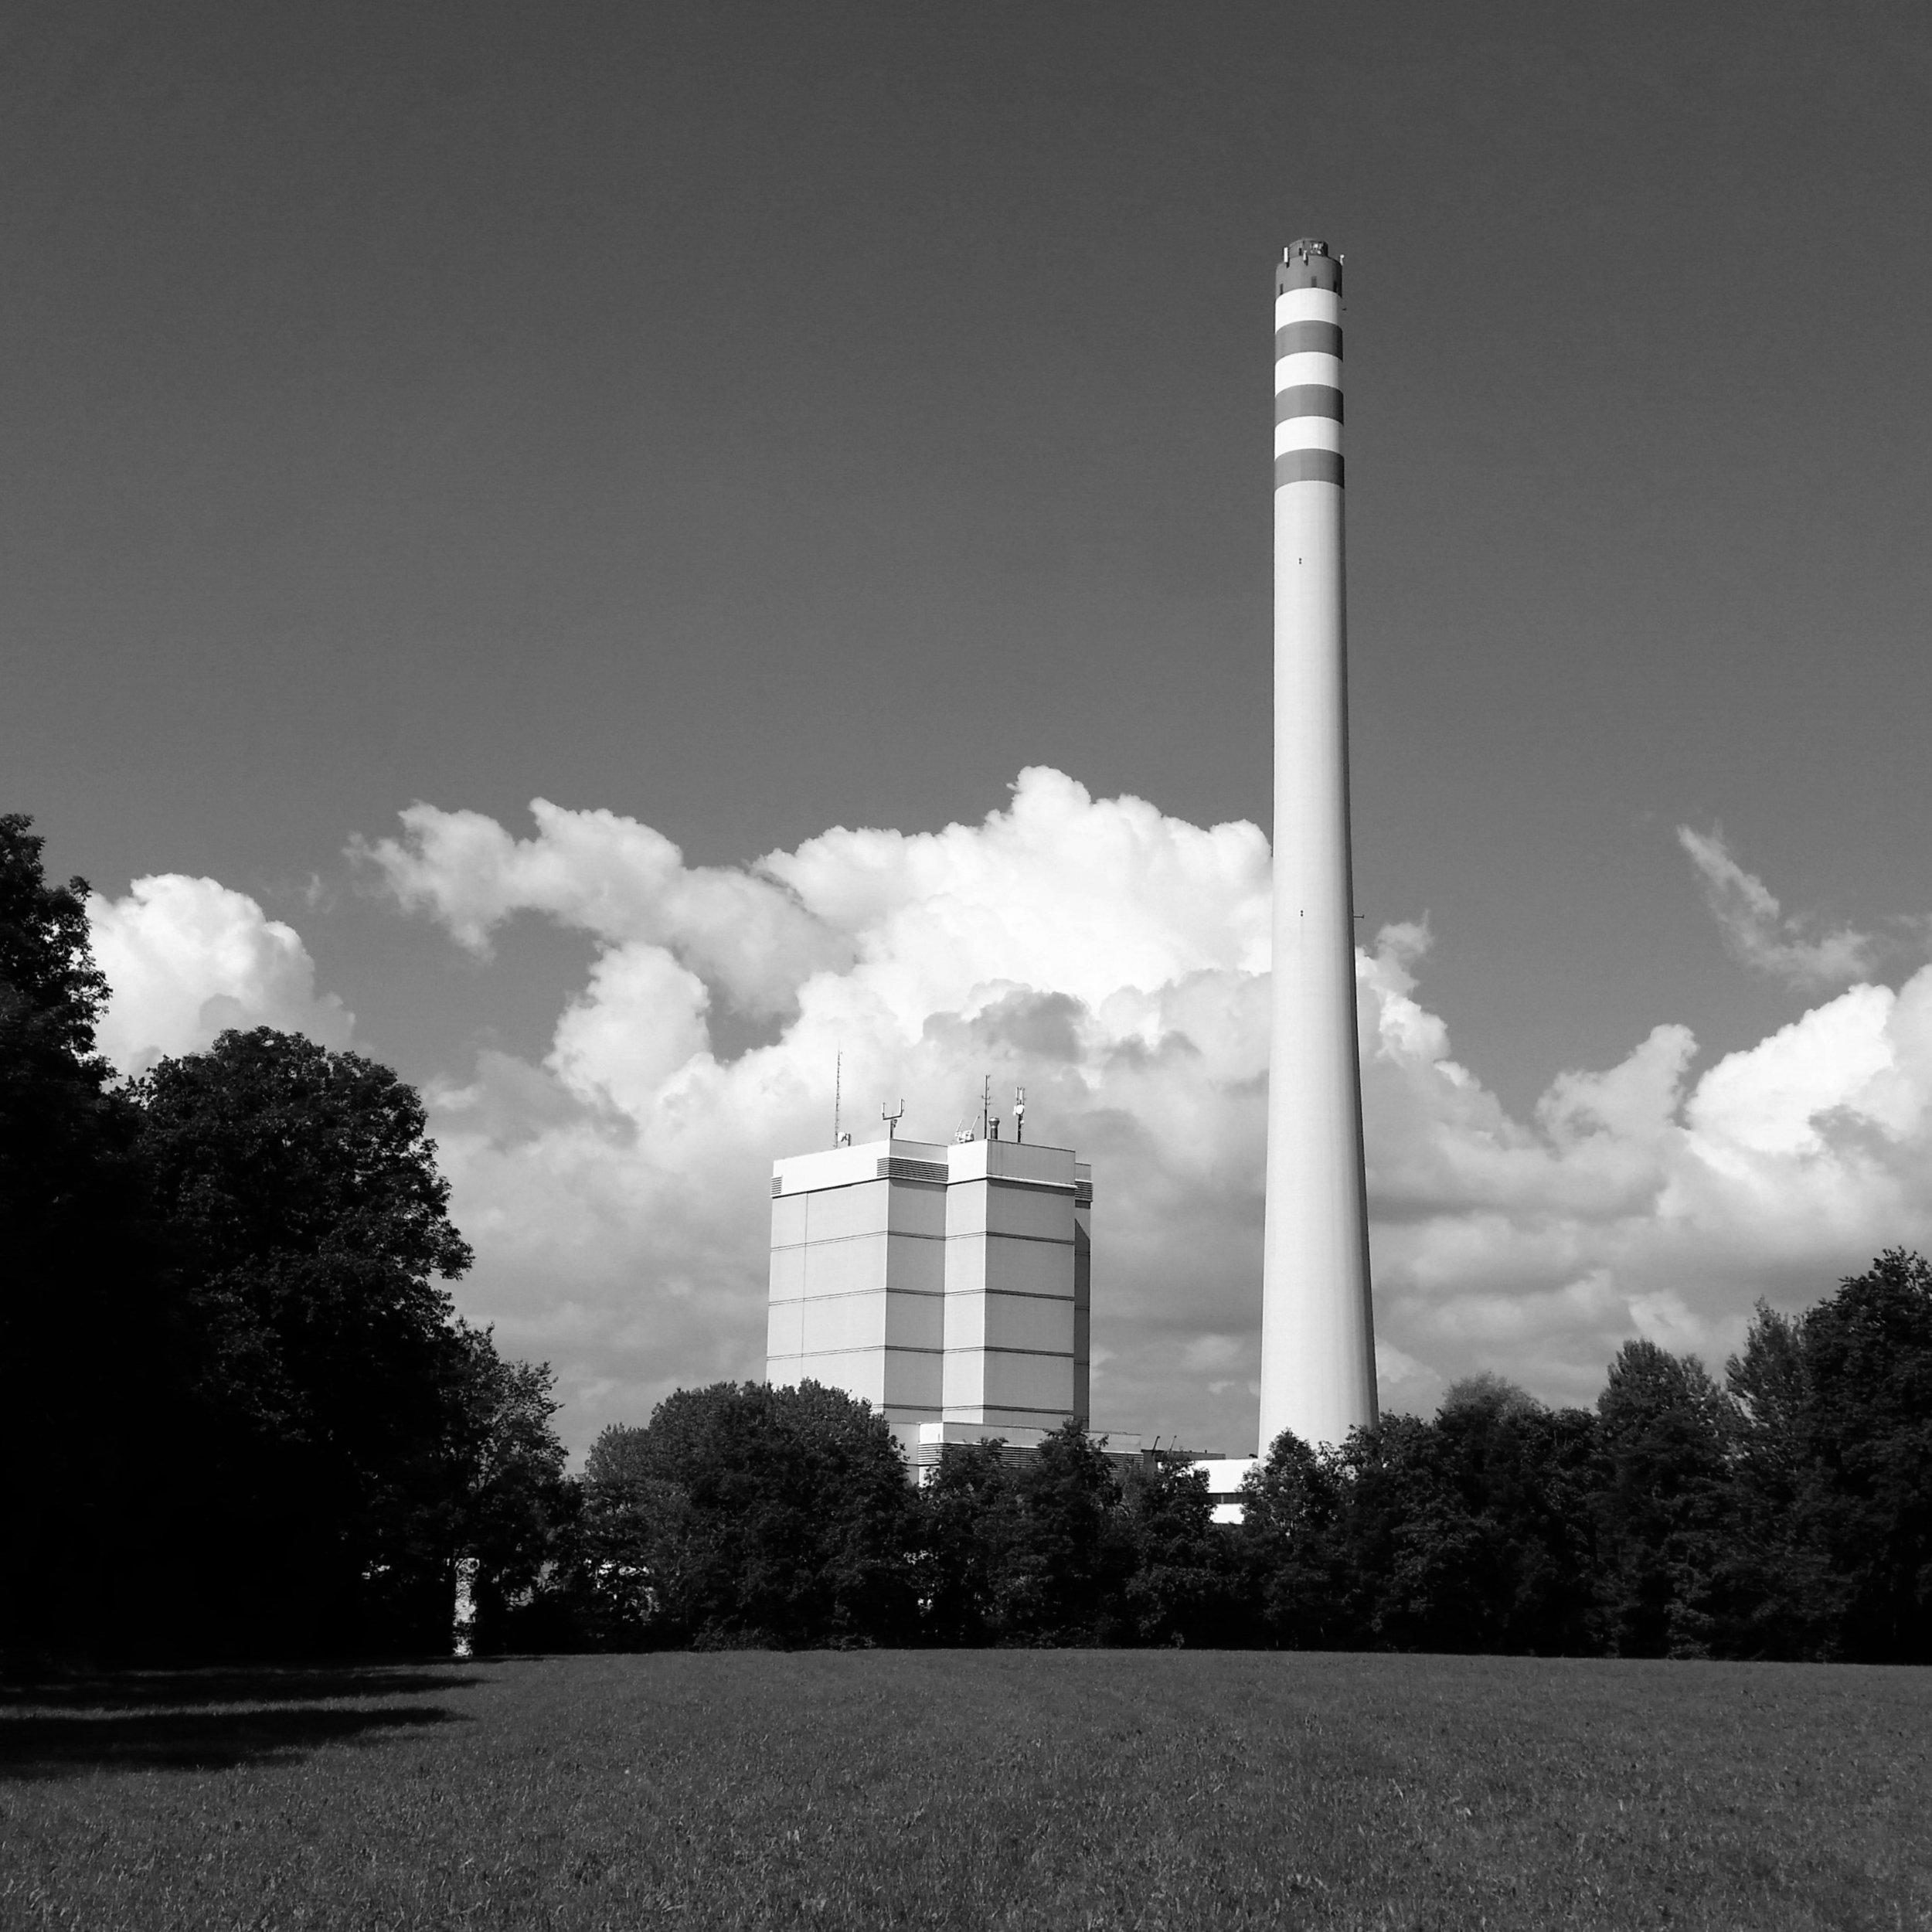 The black-and-white photograph shows a steam plant with a tall building and high smokestack at the end of a grassy field. The smokestack has stripes at its top, almost like a lighthouse. Clouds appear on the horizon.